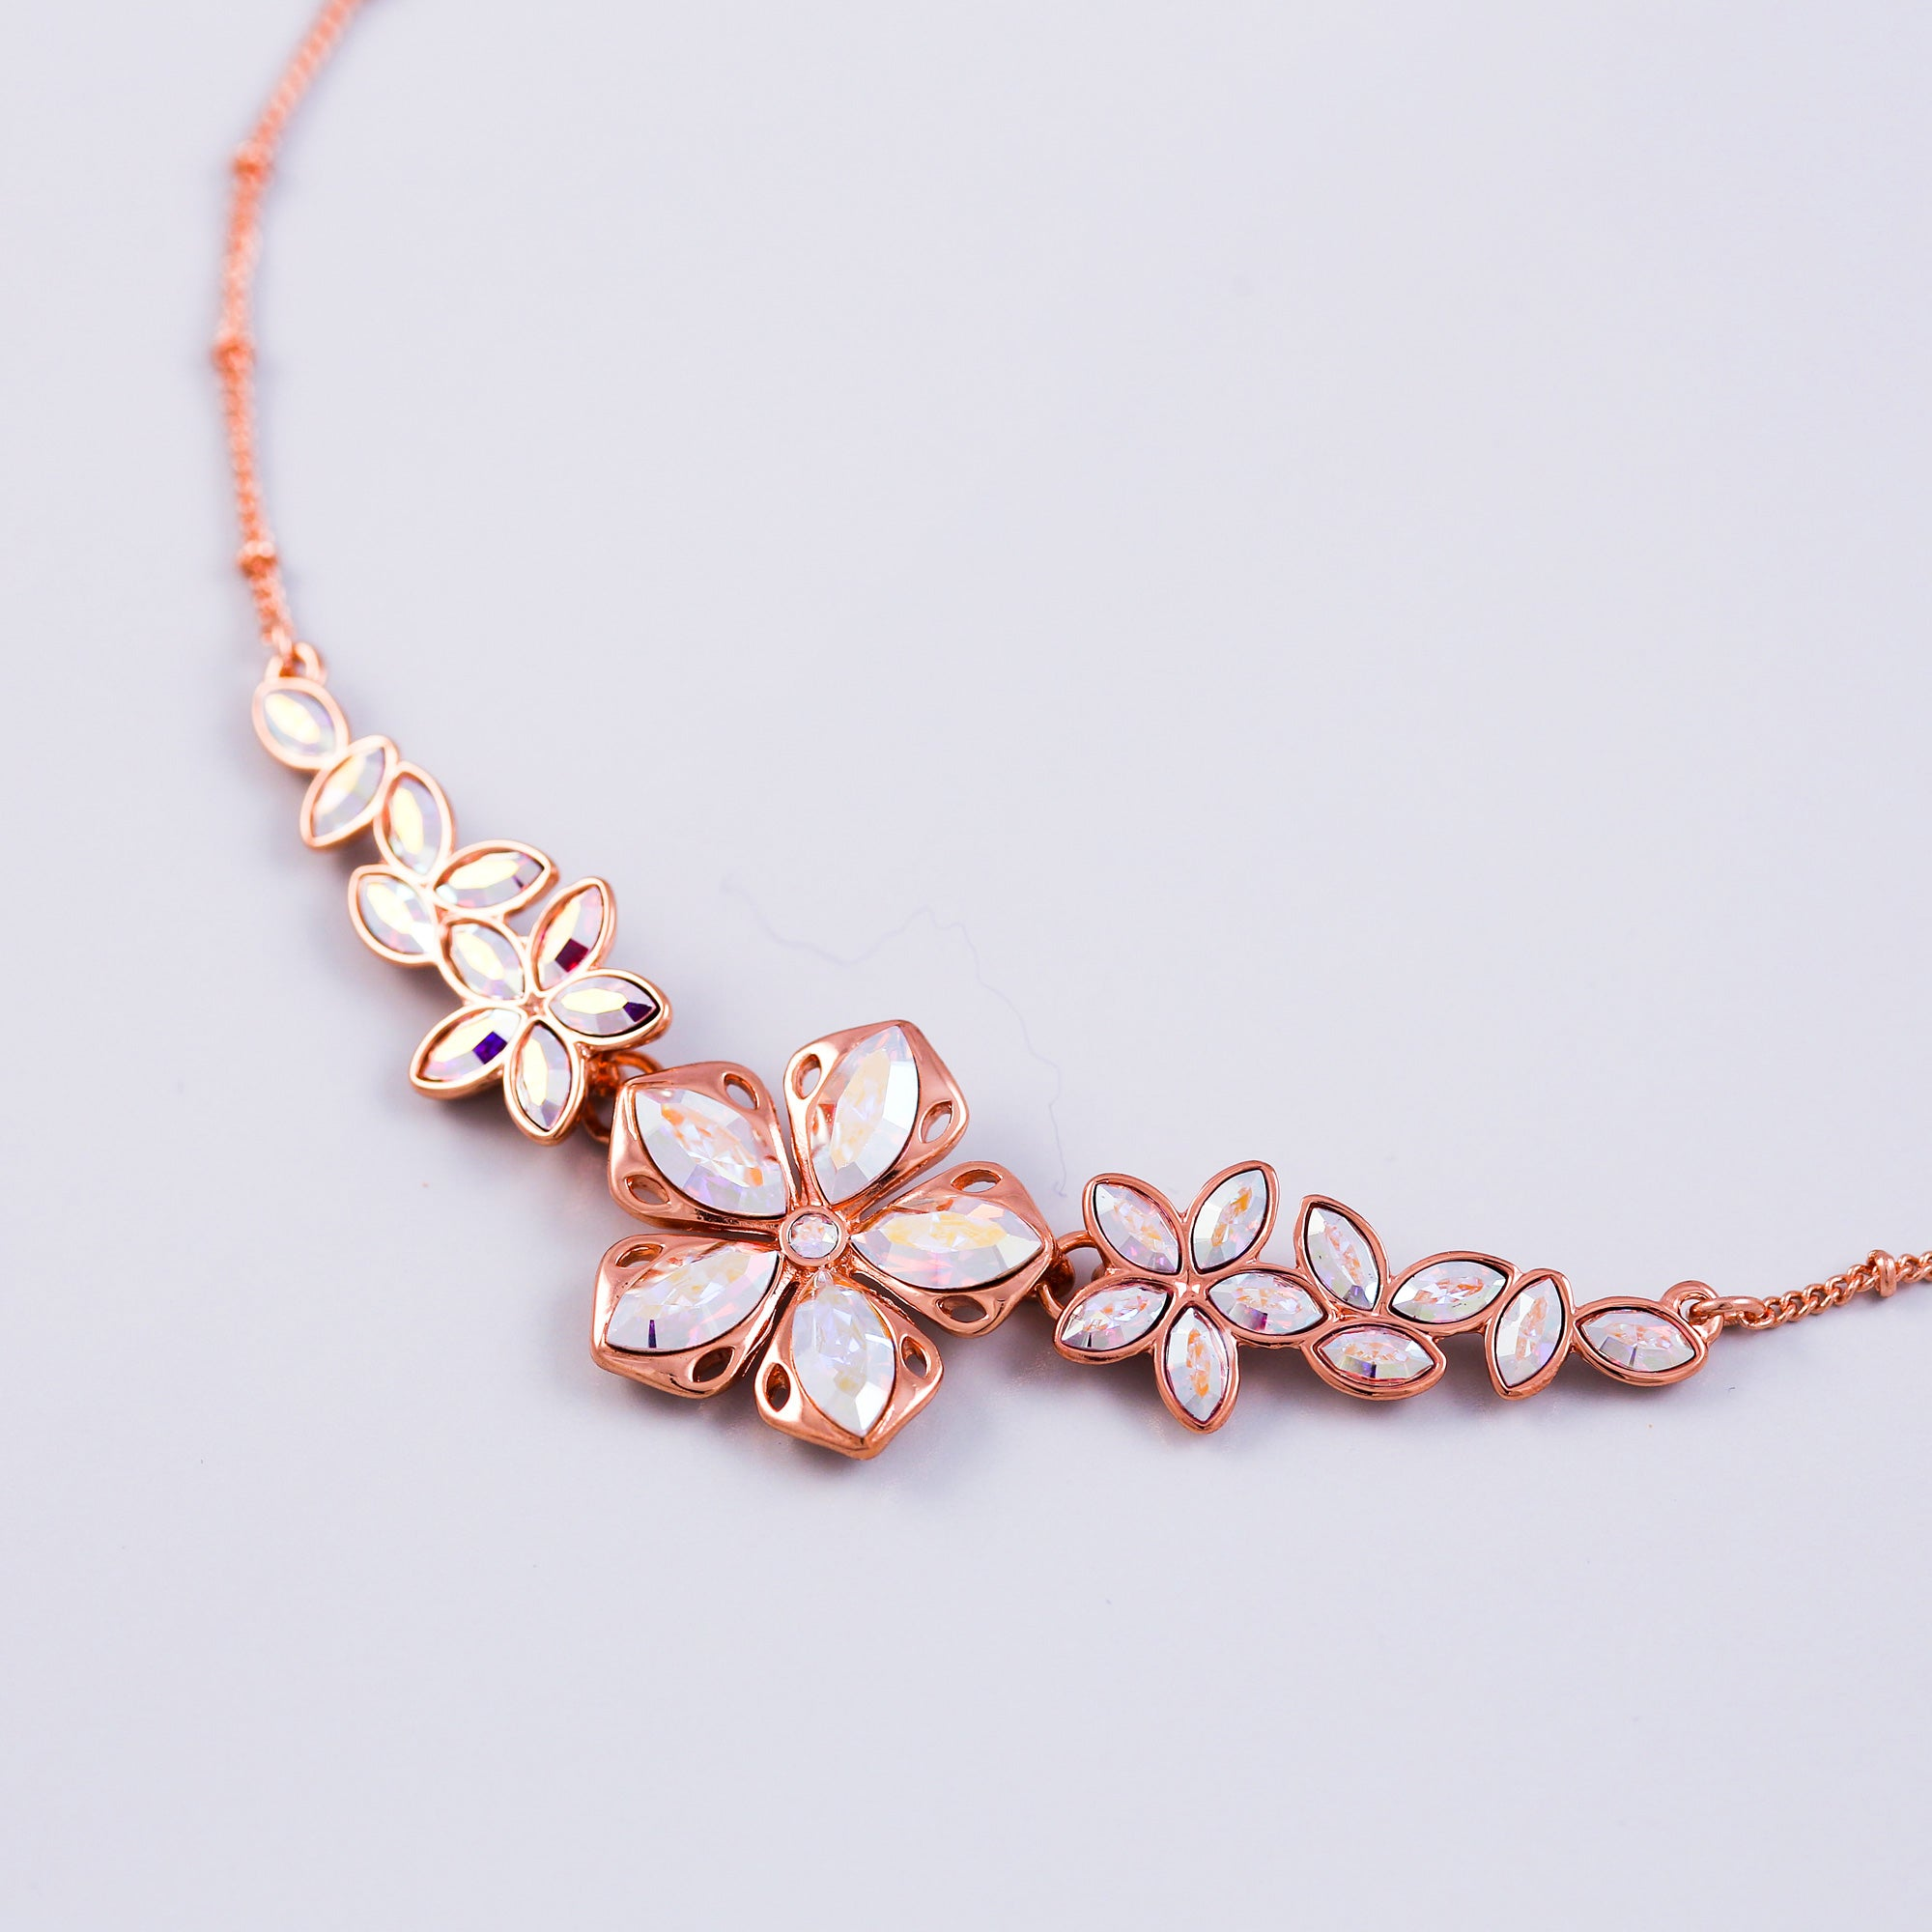 Rose Gold & Crystal AB Cherry Blossom Sakura Collar Necklace